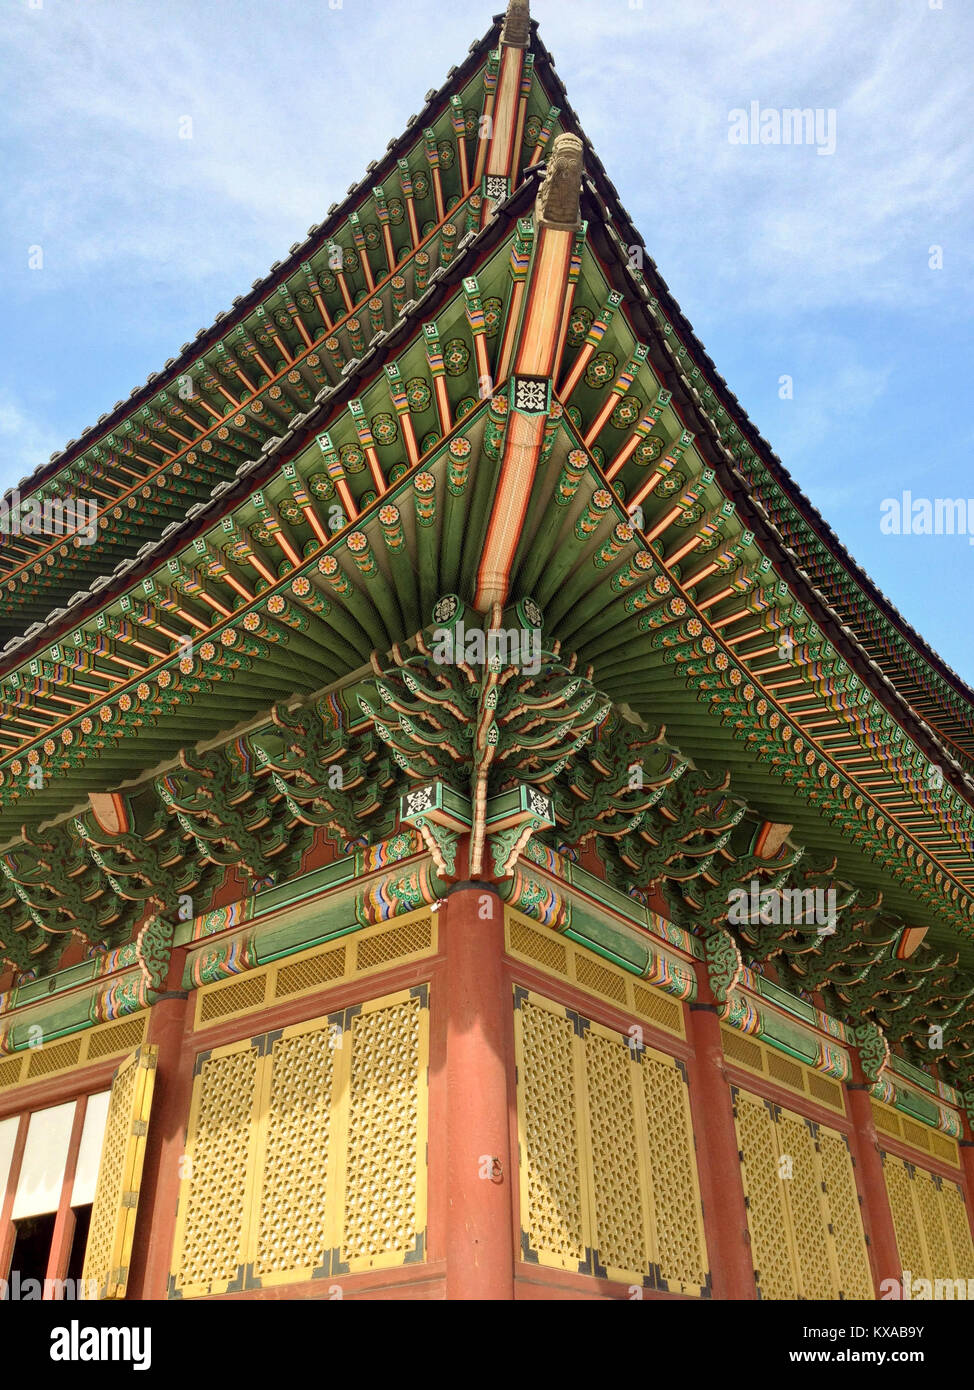 Partial view of the colorful Gyeongbokgung Palace with ornate wooden details layered roof line and other architectural - Stock Image